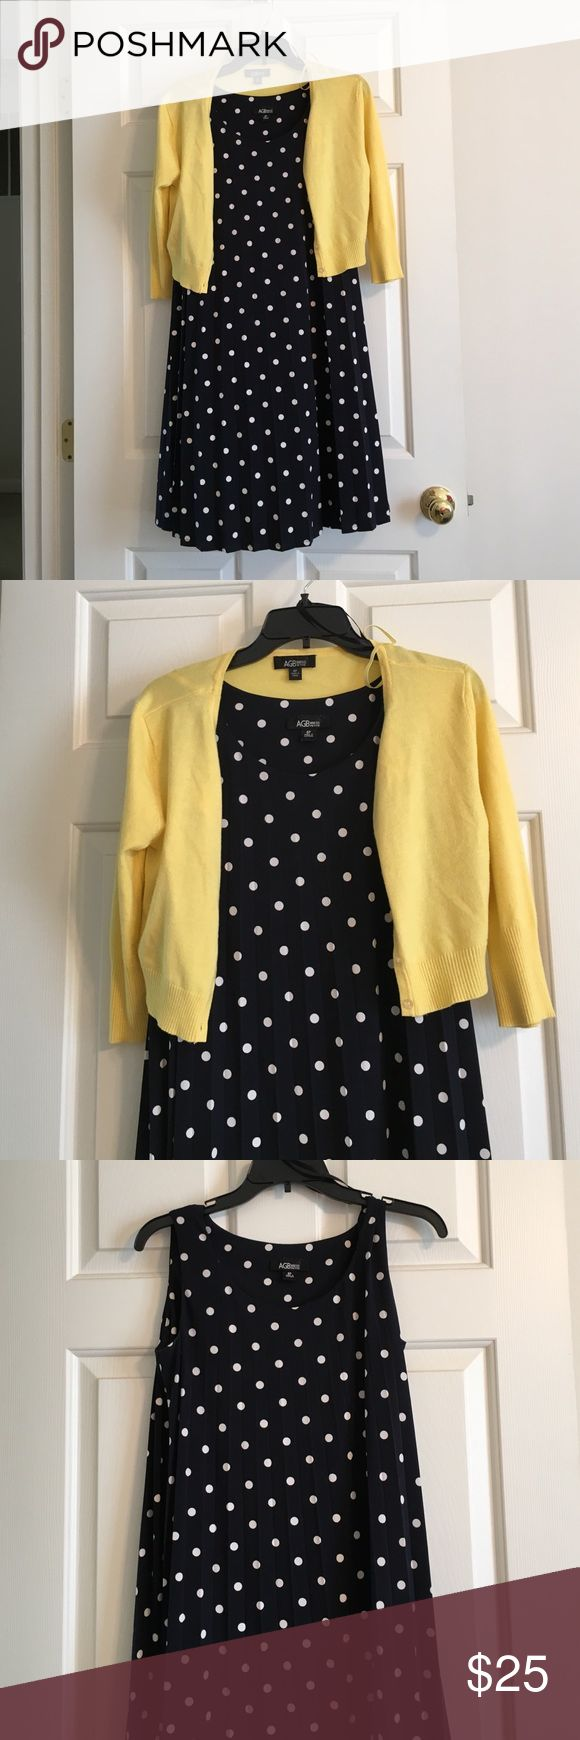 Petite blue polka dot dress Petite dress, navy and white polka dots with pleats. Comes with 3 qtr. sleeve yellow sweater. Only worn a few times. In great condition. AGB Dresses Midi